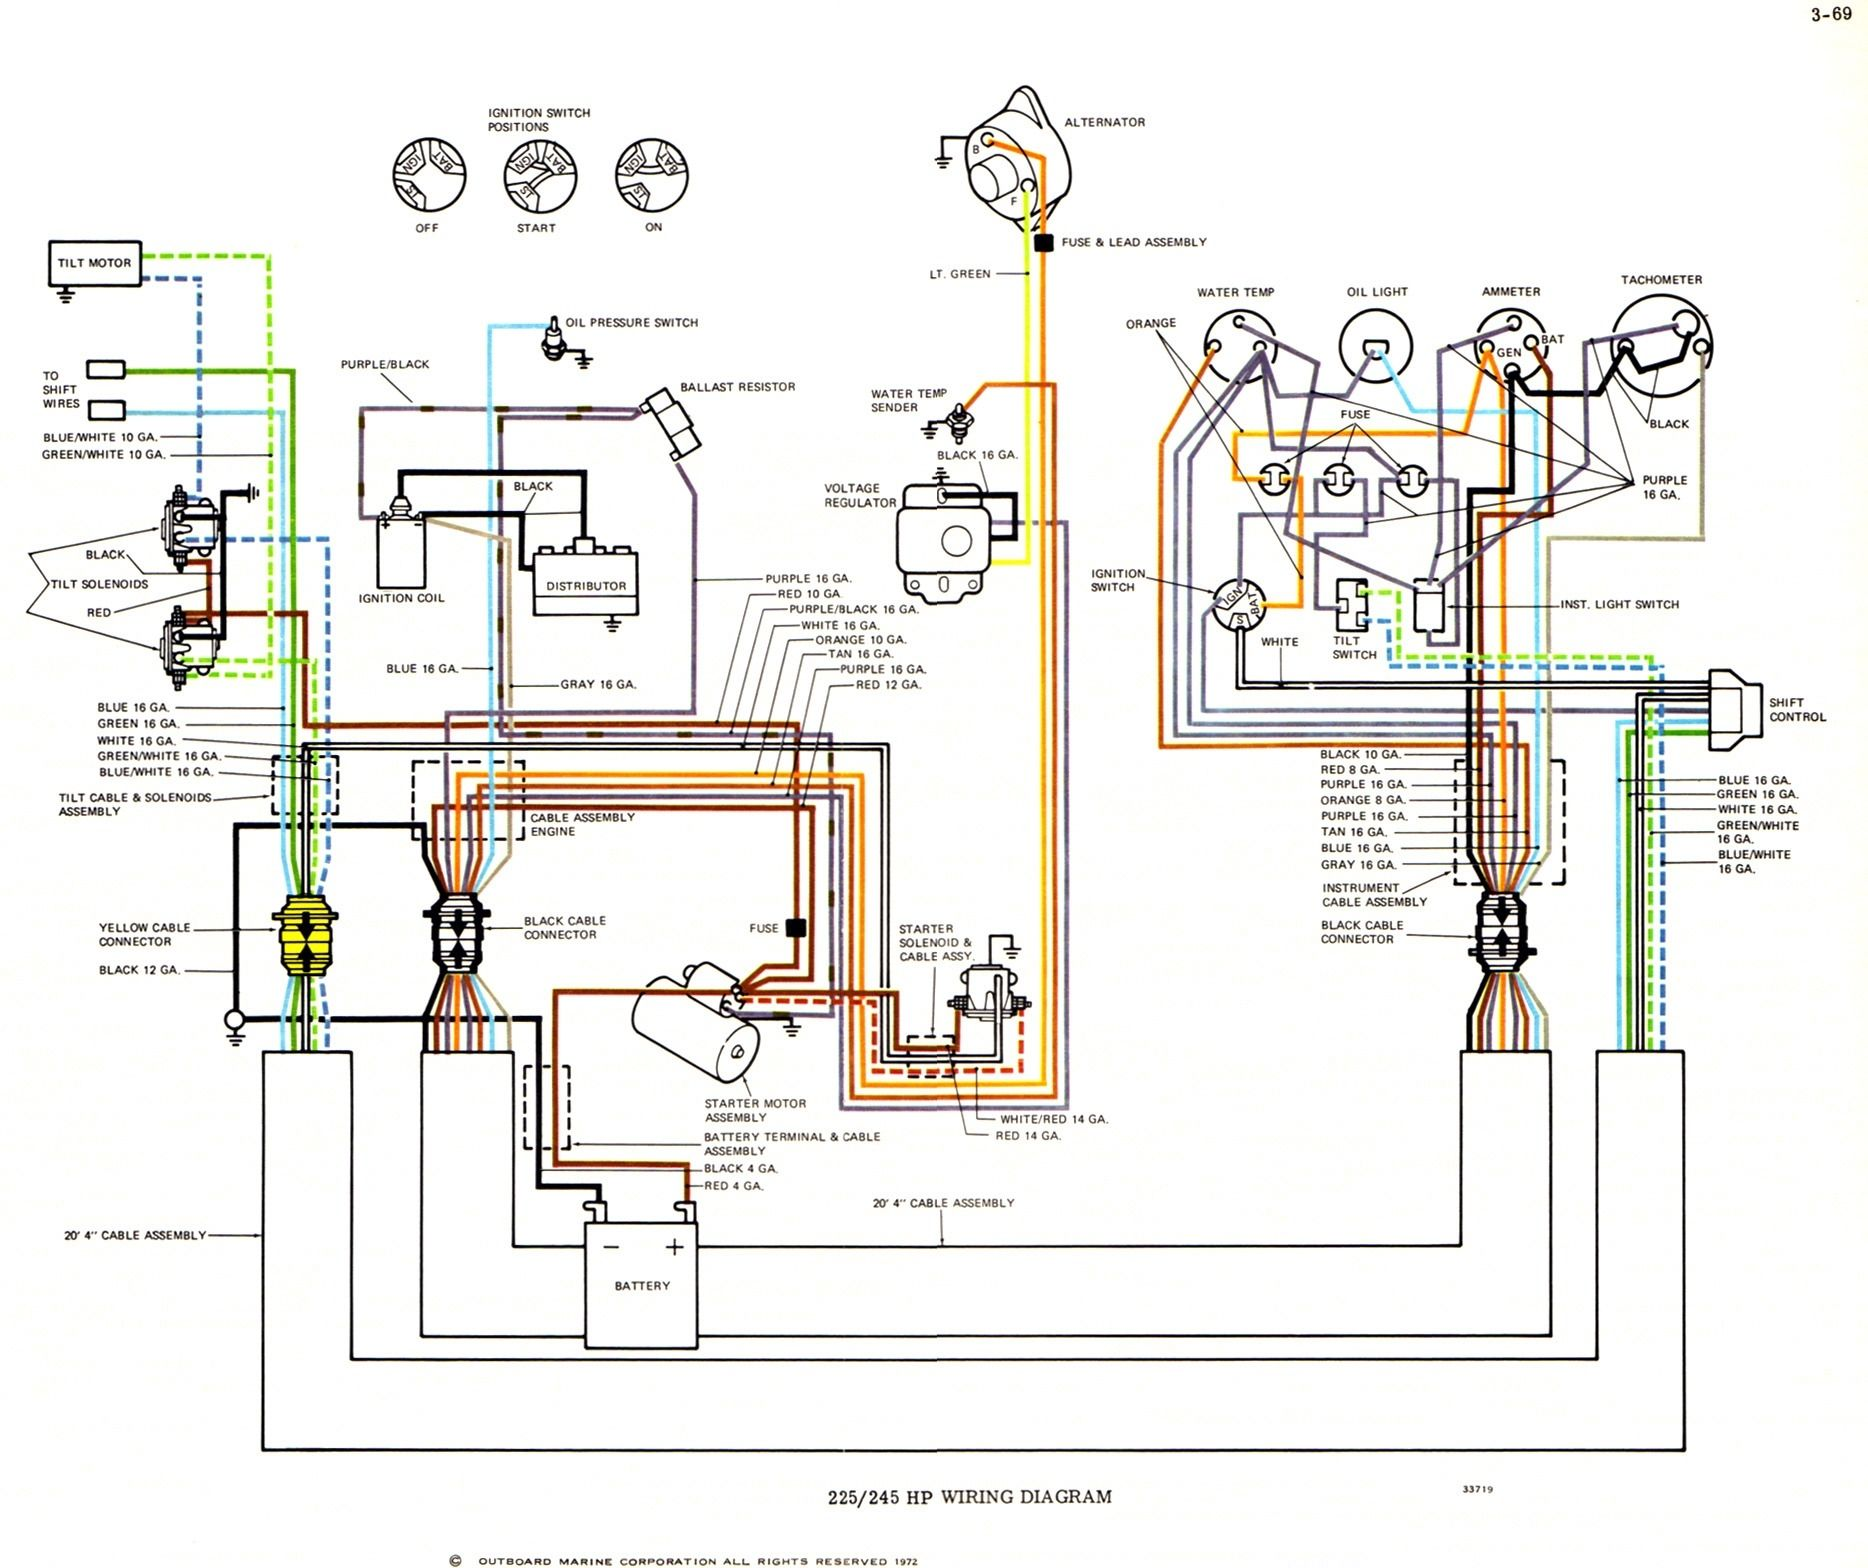 Yamaha Outboard Electrical Wiring Diagram Wiringdiagramorg House Drawing